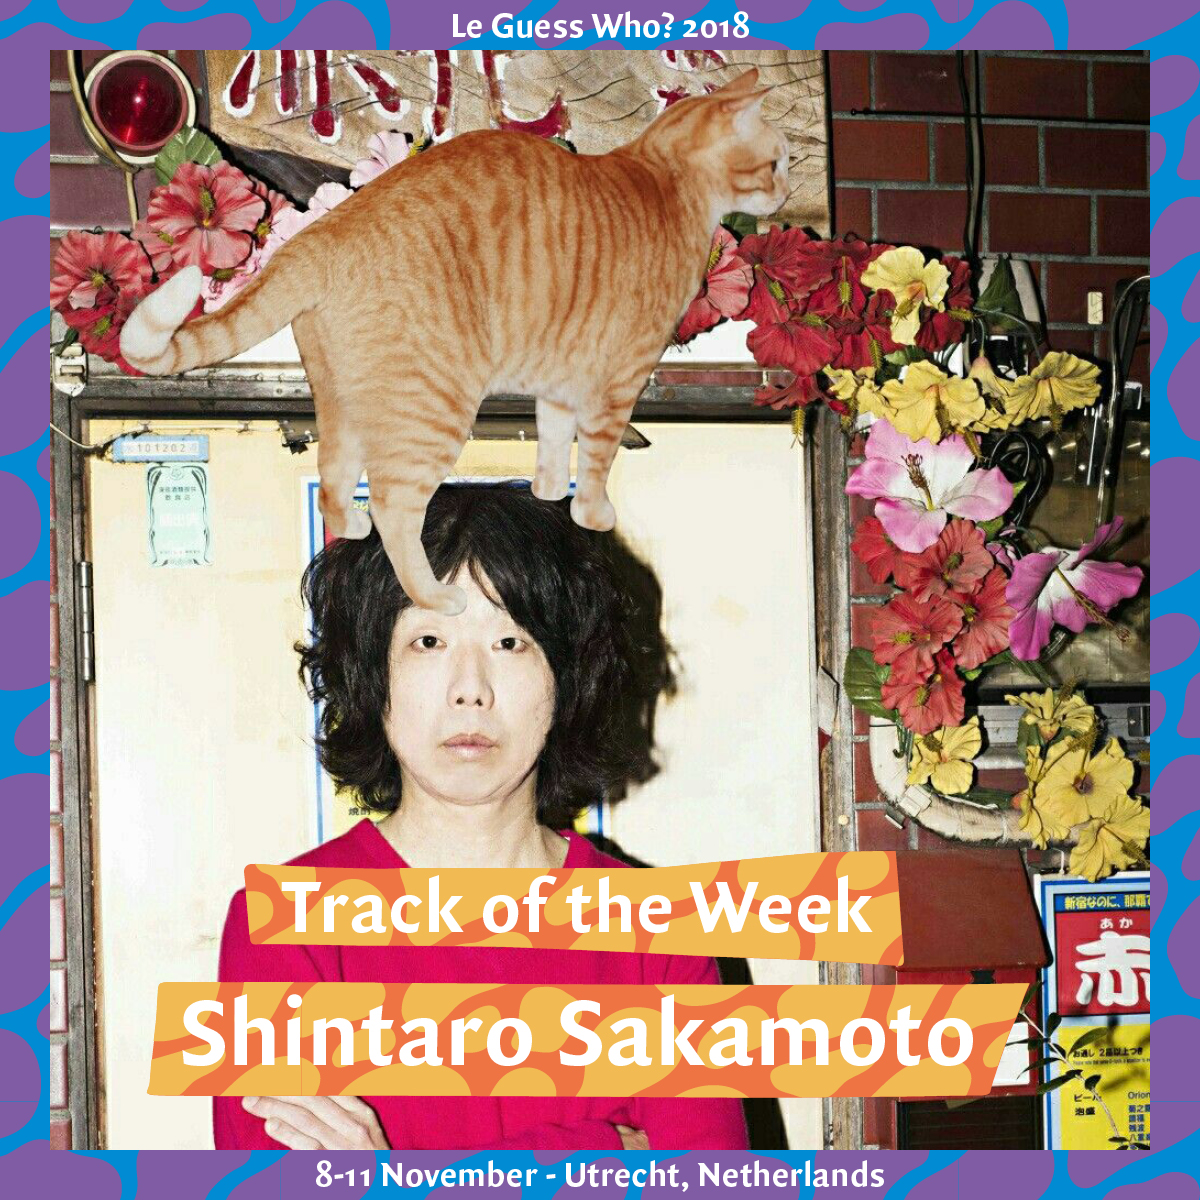 Track of the Week #13: Shintaro Sakamoto - 'Let's Dance Raw'